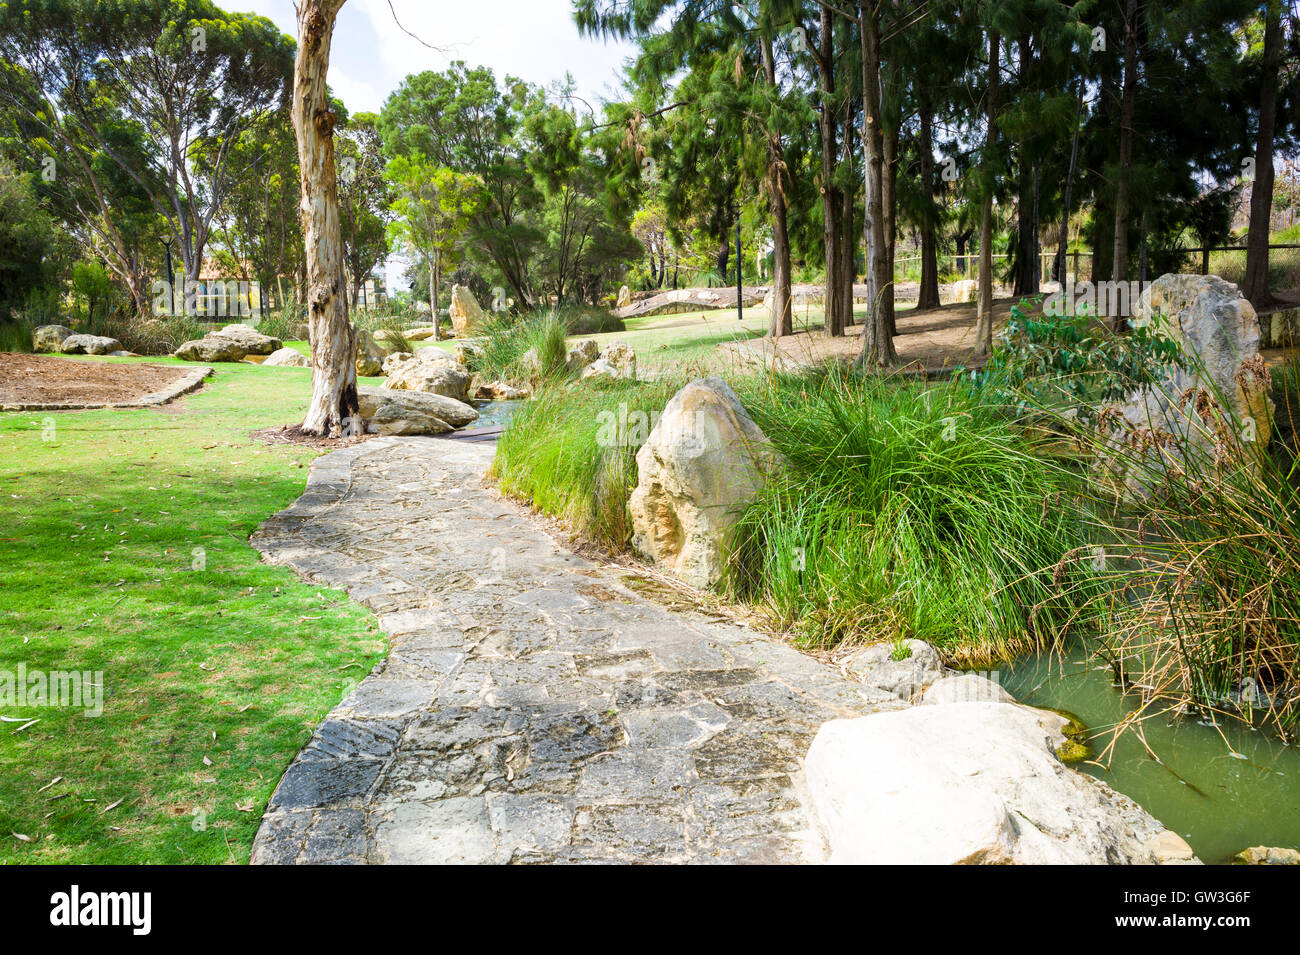 Parks gardens and Walks in Joondalup Western Australia Stock Photo